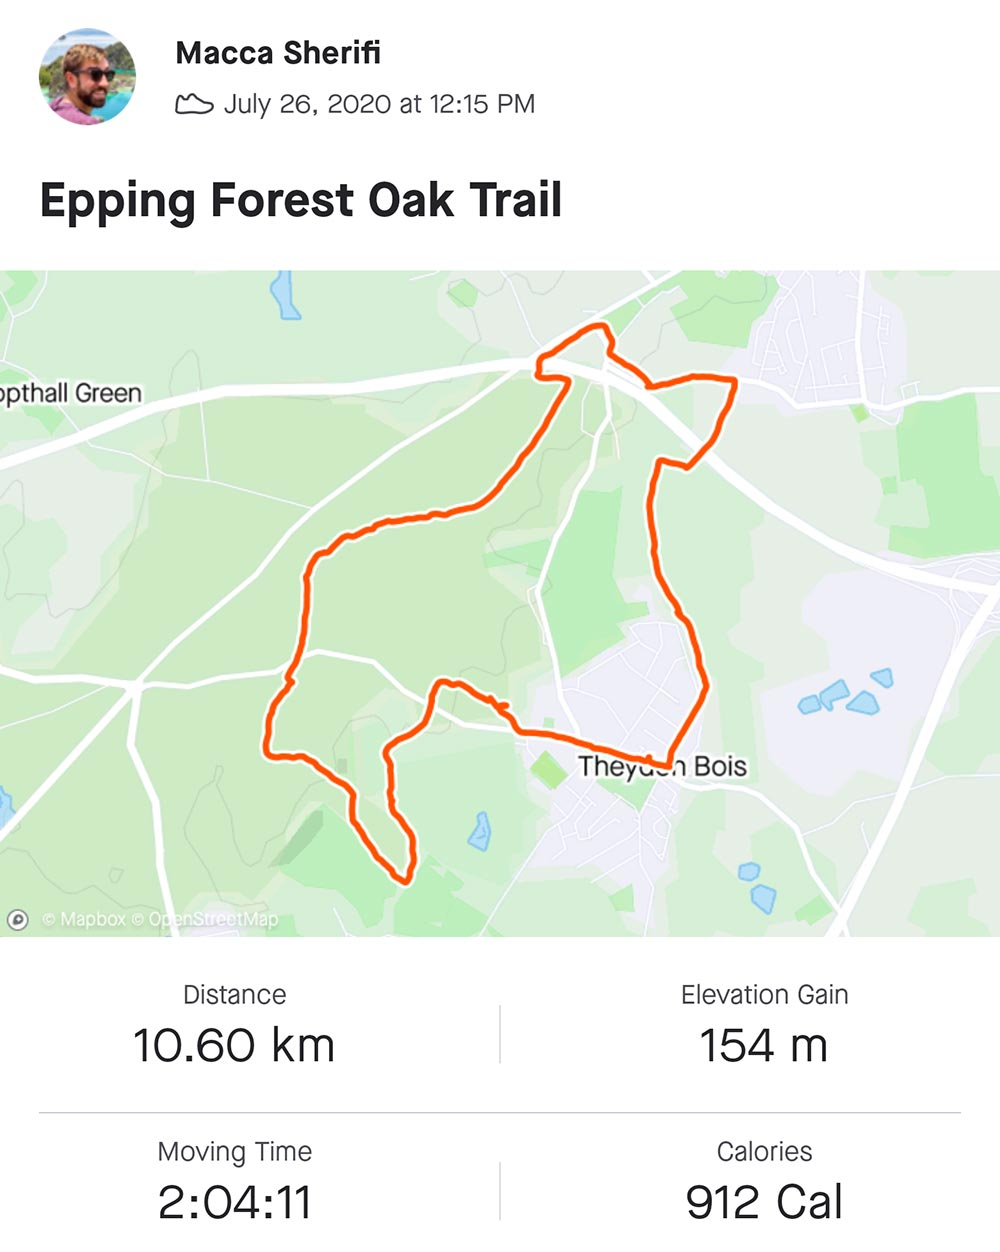 epping forest oak trail map